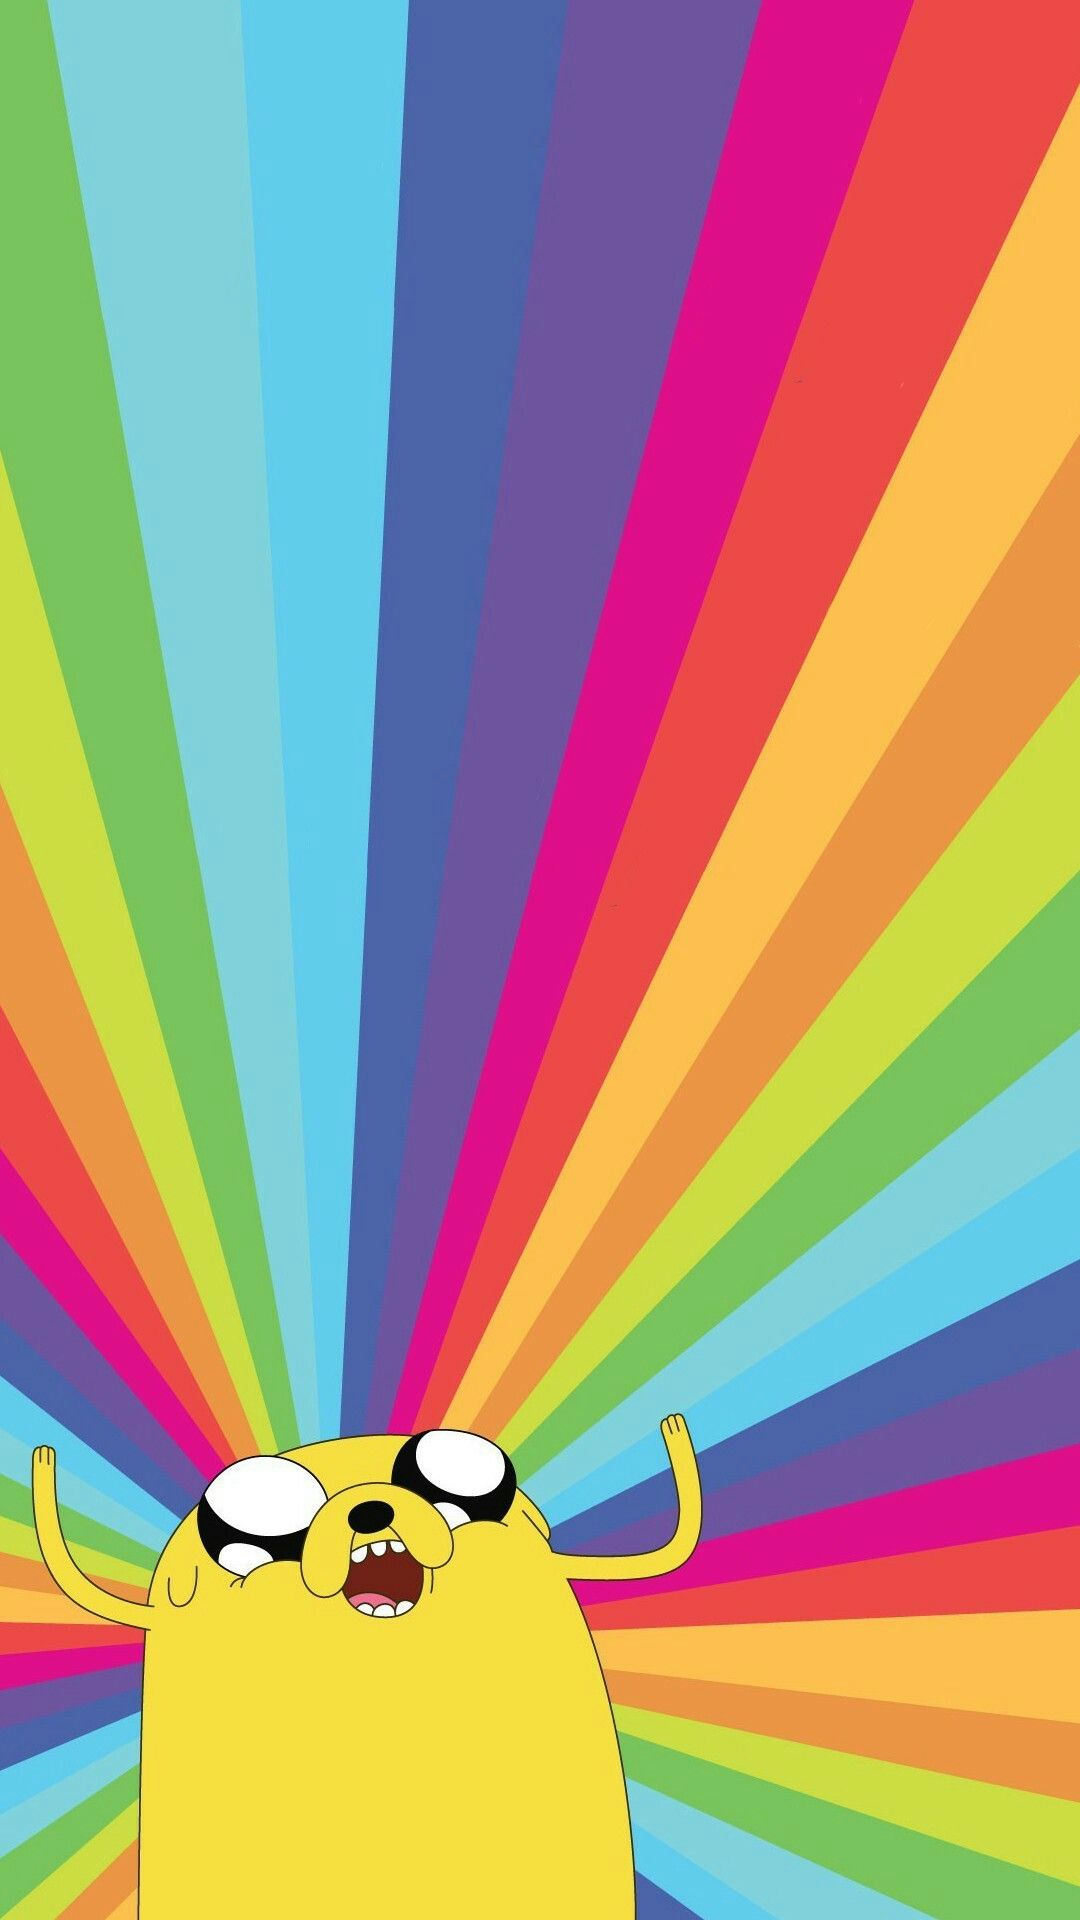 Rainbow Wallpaper Adventure Time Iphone Wallpaper Twitter Backgrounds Phone Backgrounds Wallpaper Backgrounds